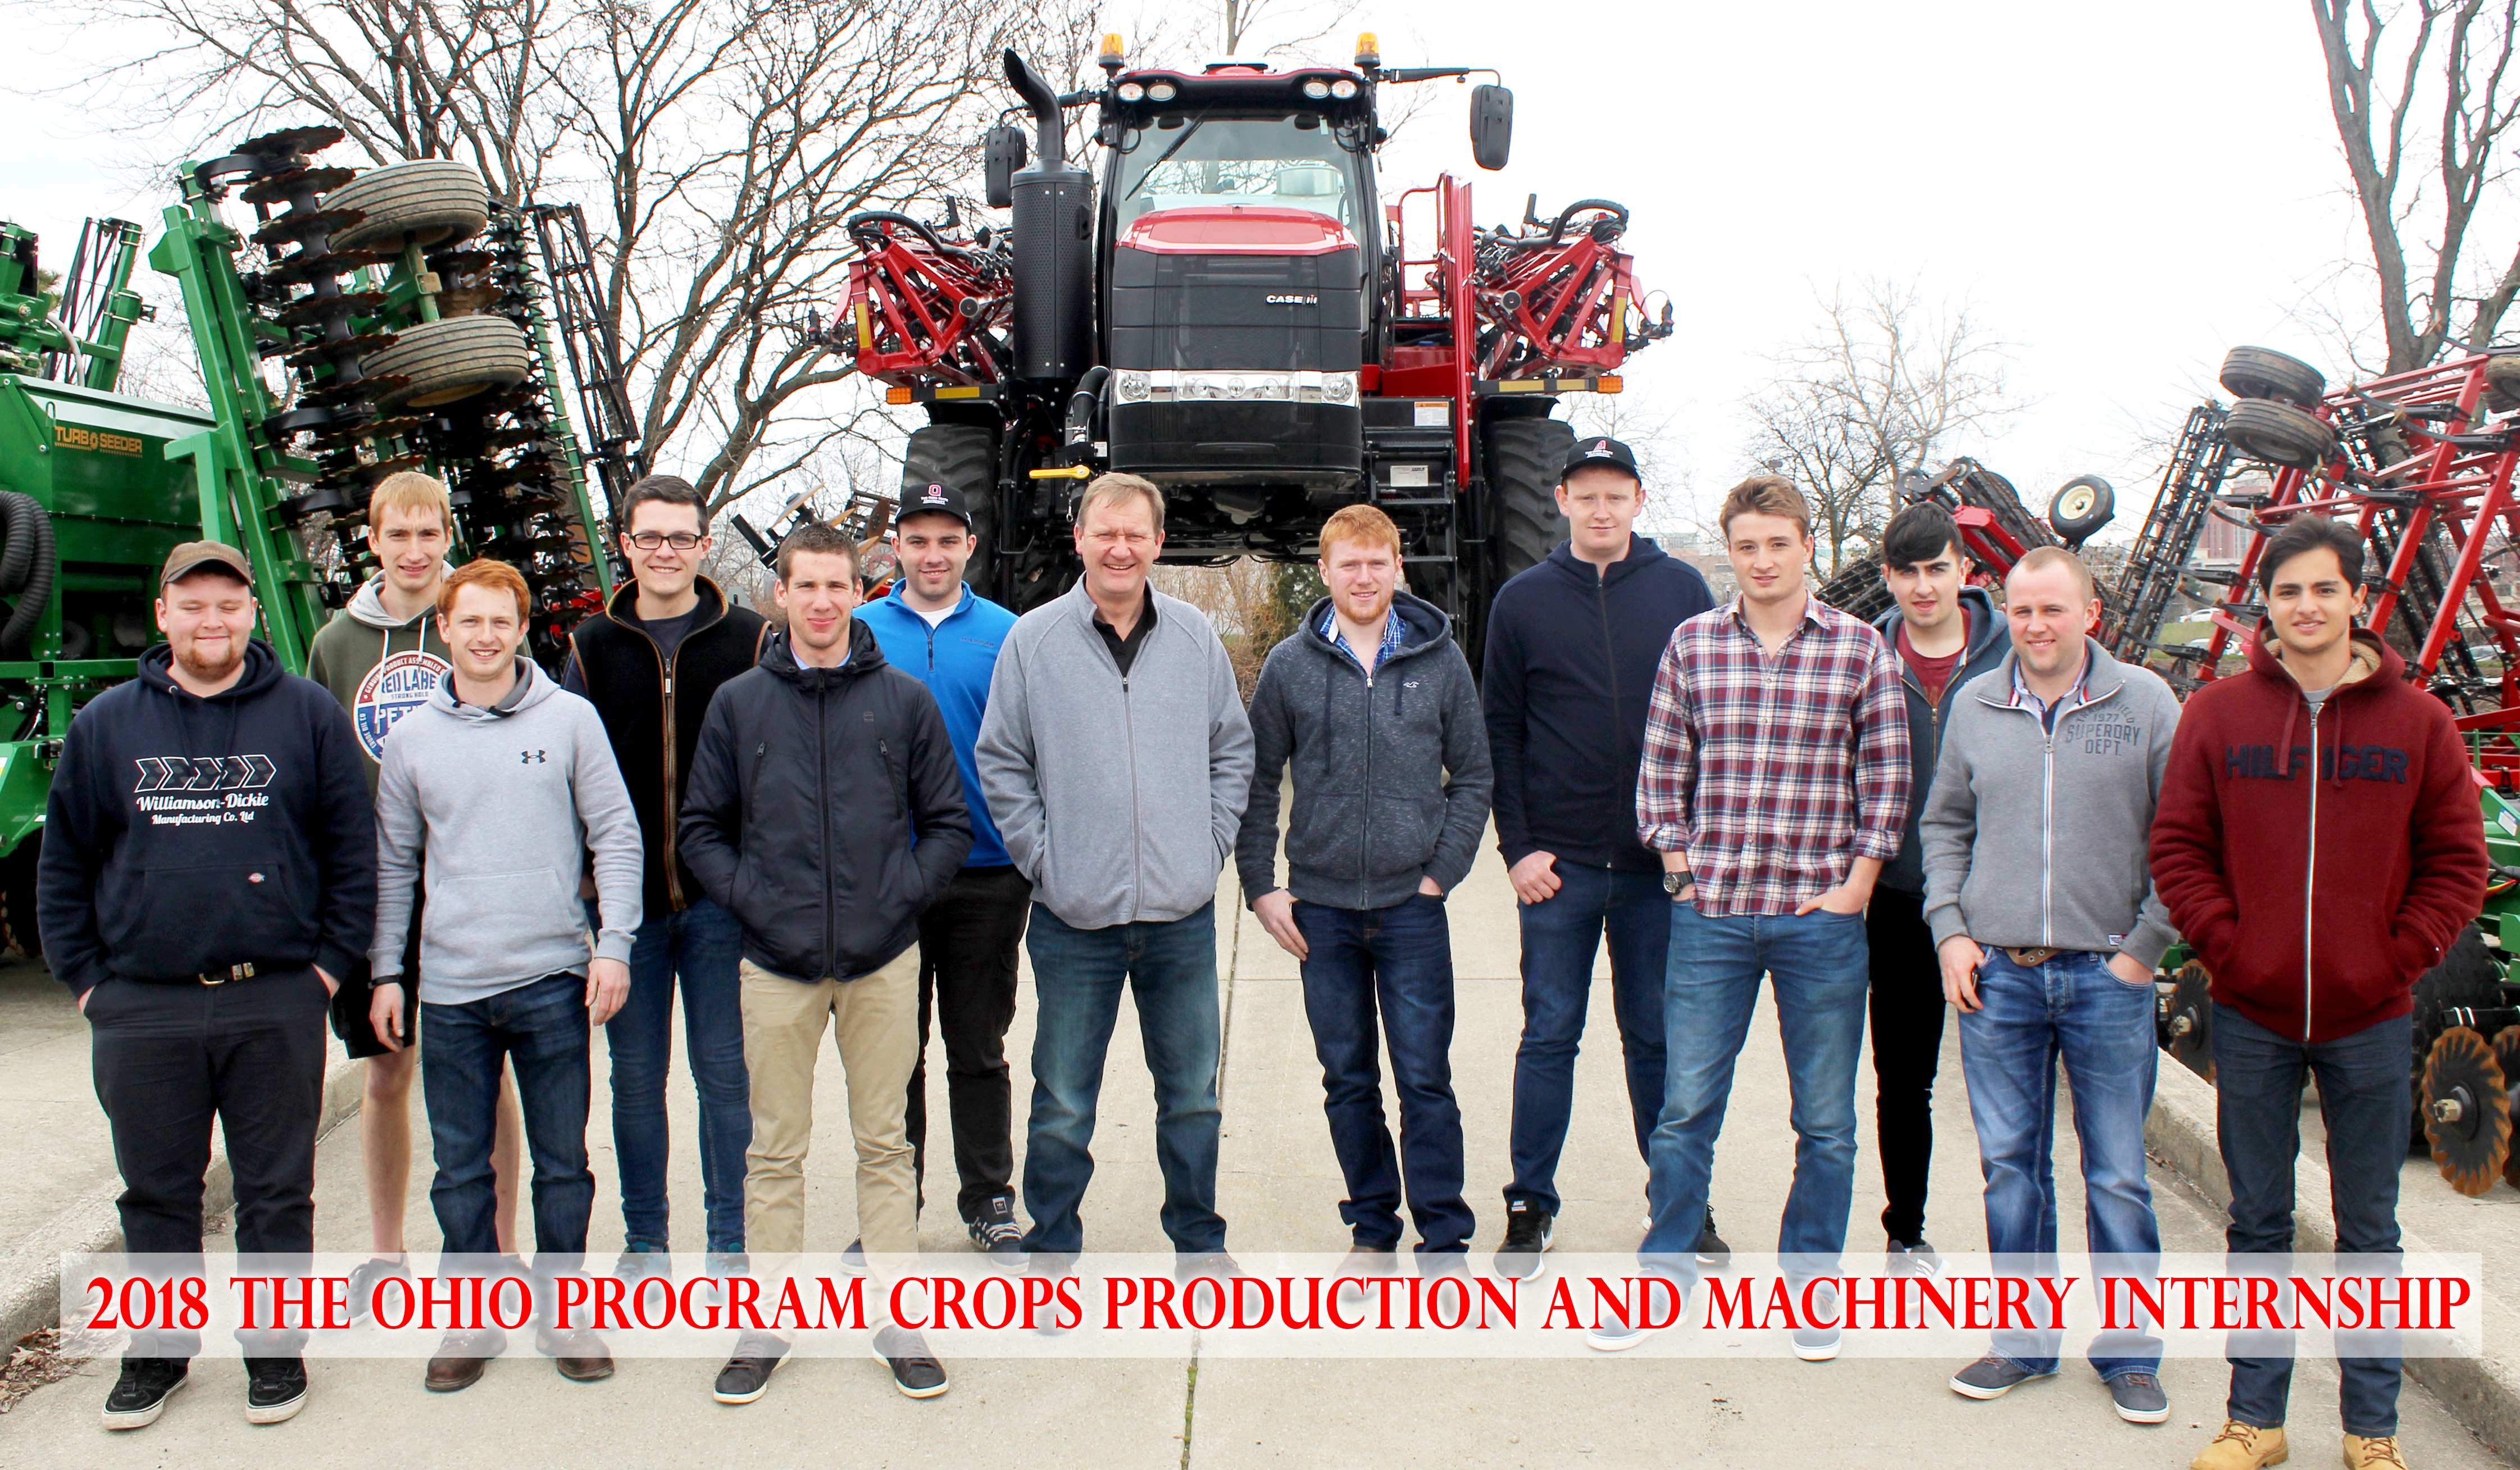 Crops Production and Machinery Internship in Apr 2018